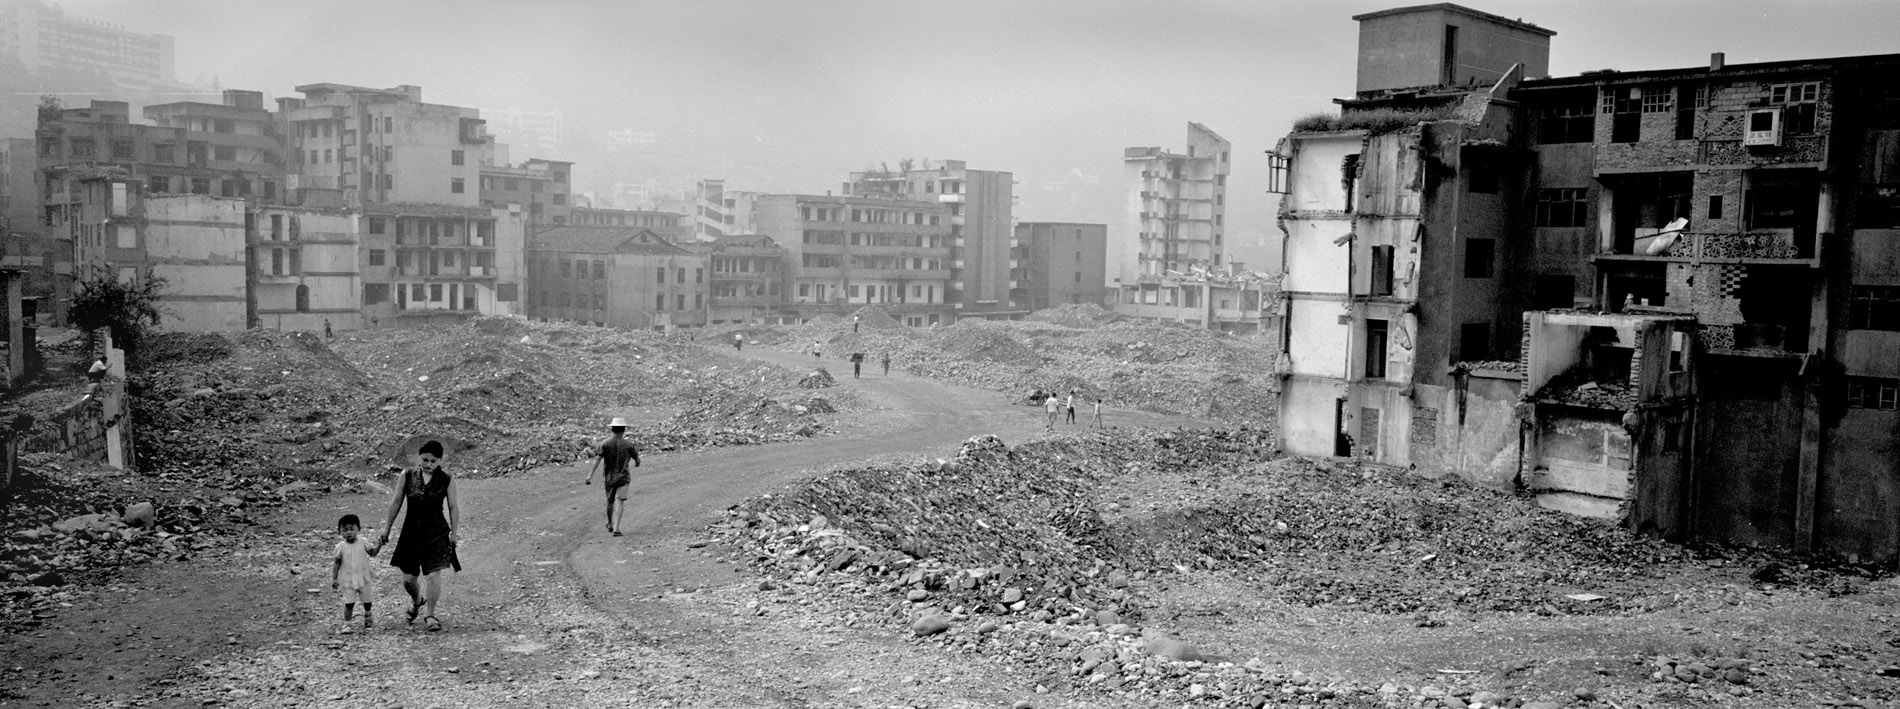 Inhabitants of Gaoyang walking by the razed buildings of the old city. Positionned by a subsidiary of the Yangtze, the city got flooded in the summer of 2006.